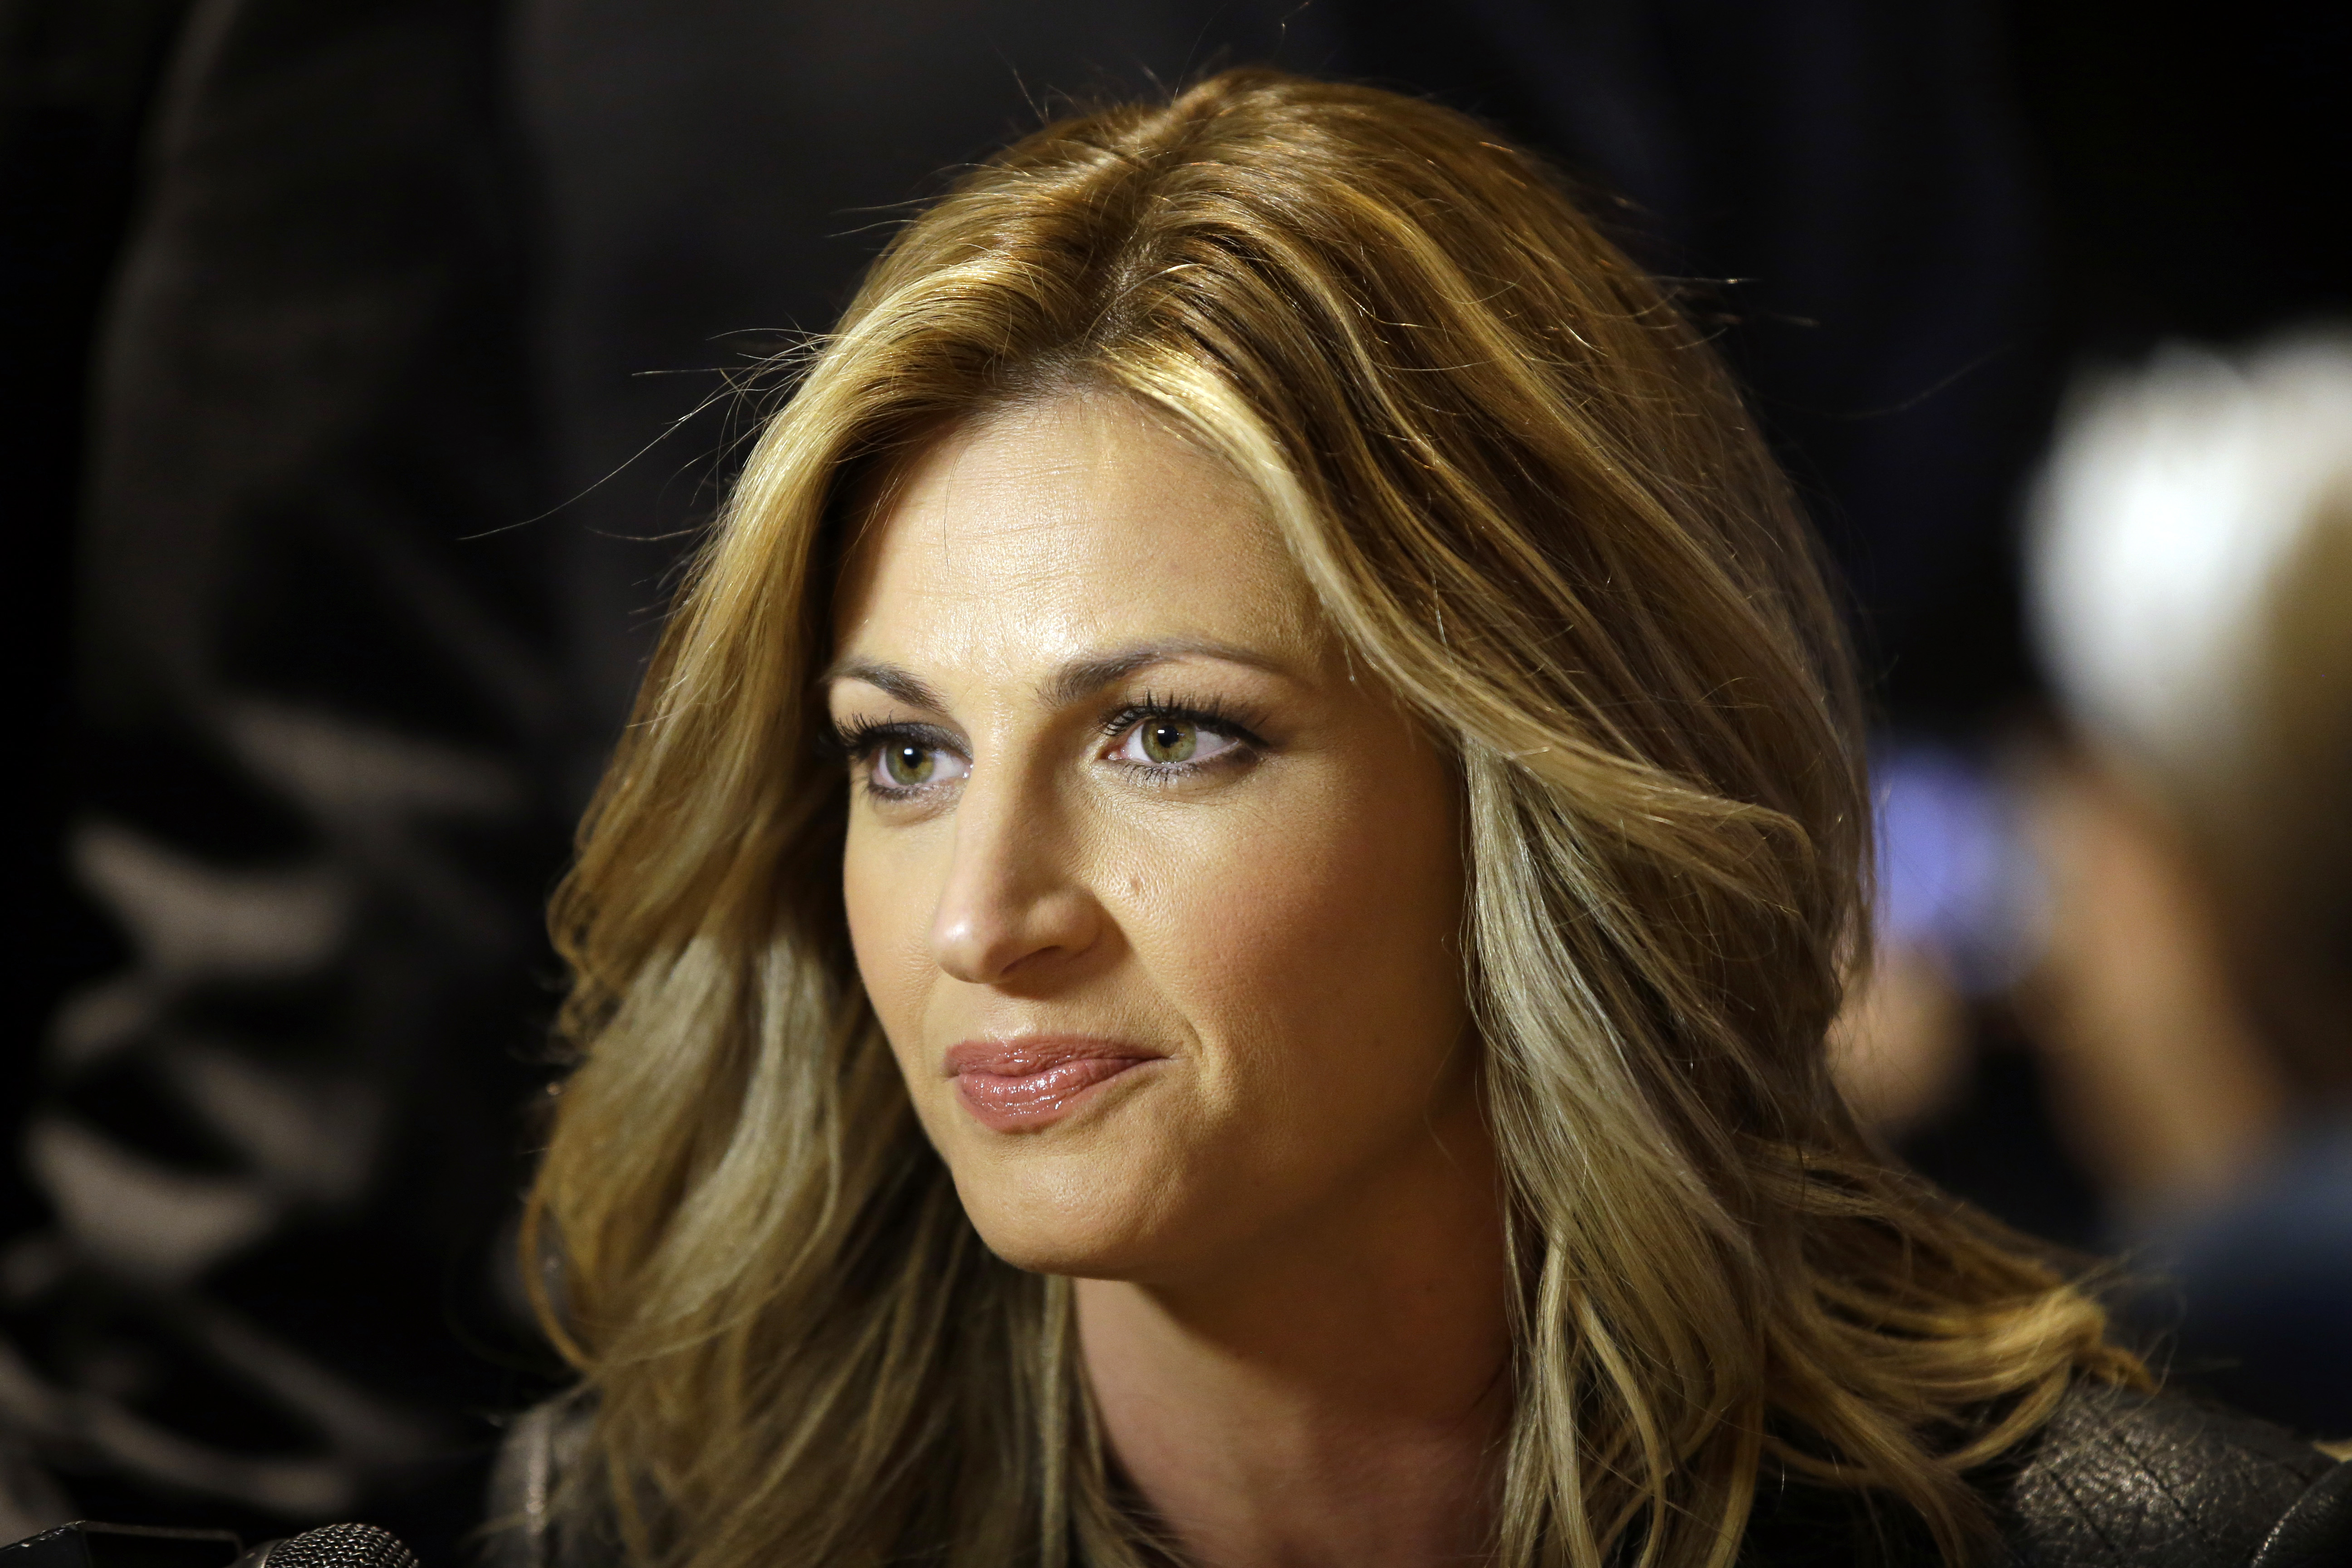 Erin andrews topless video — pic 9